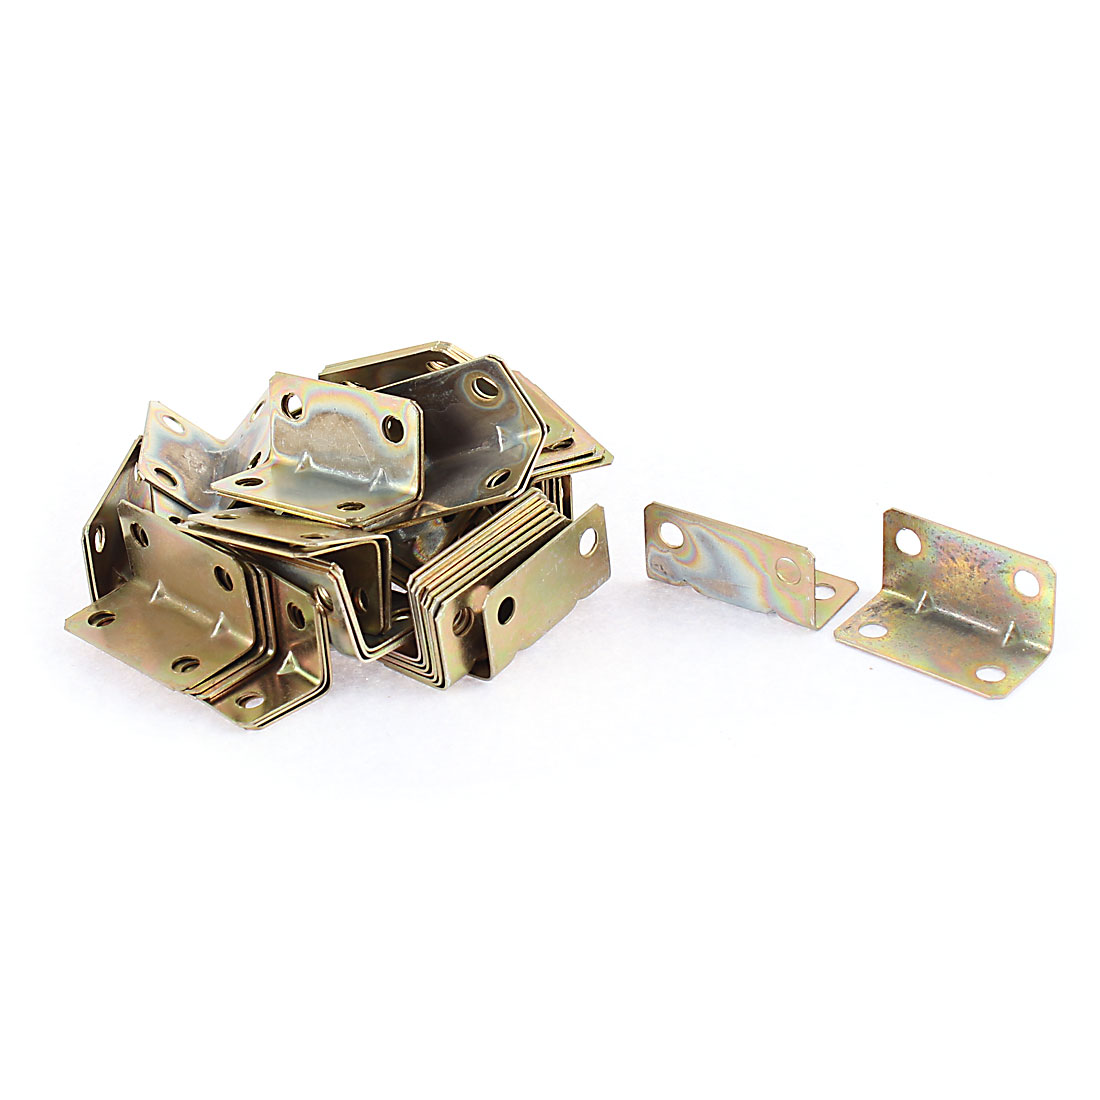 Furniture Door Corner Angle Brackets Fasteners Joint Connector 16x16x32mm 60pcs